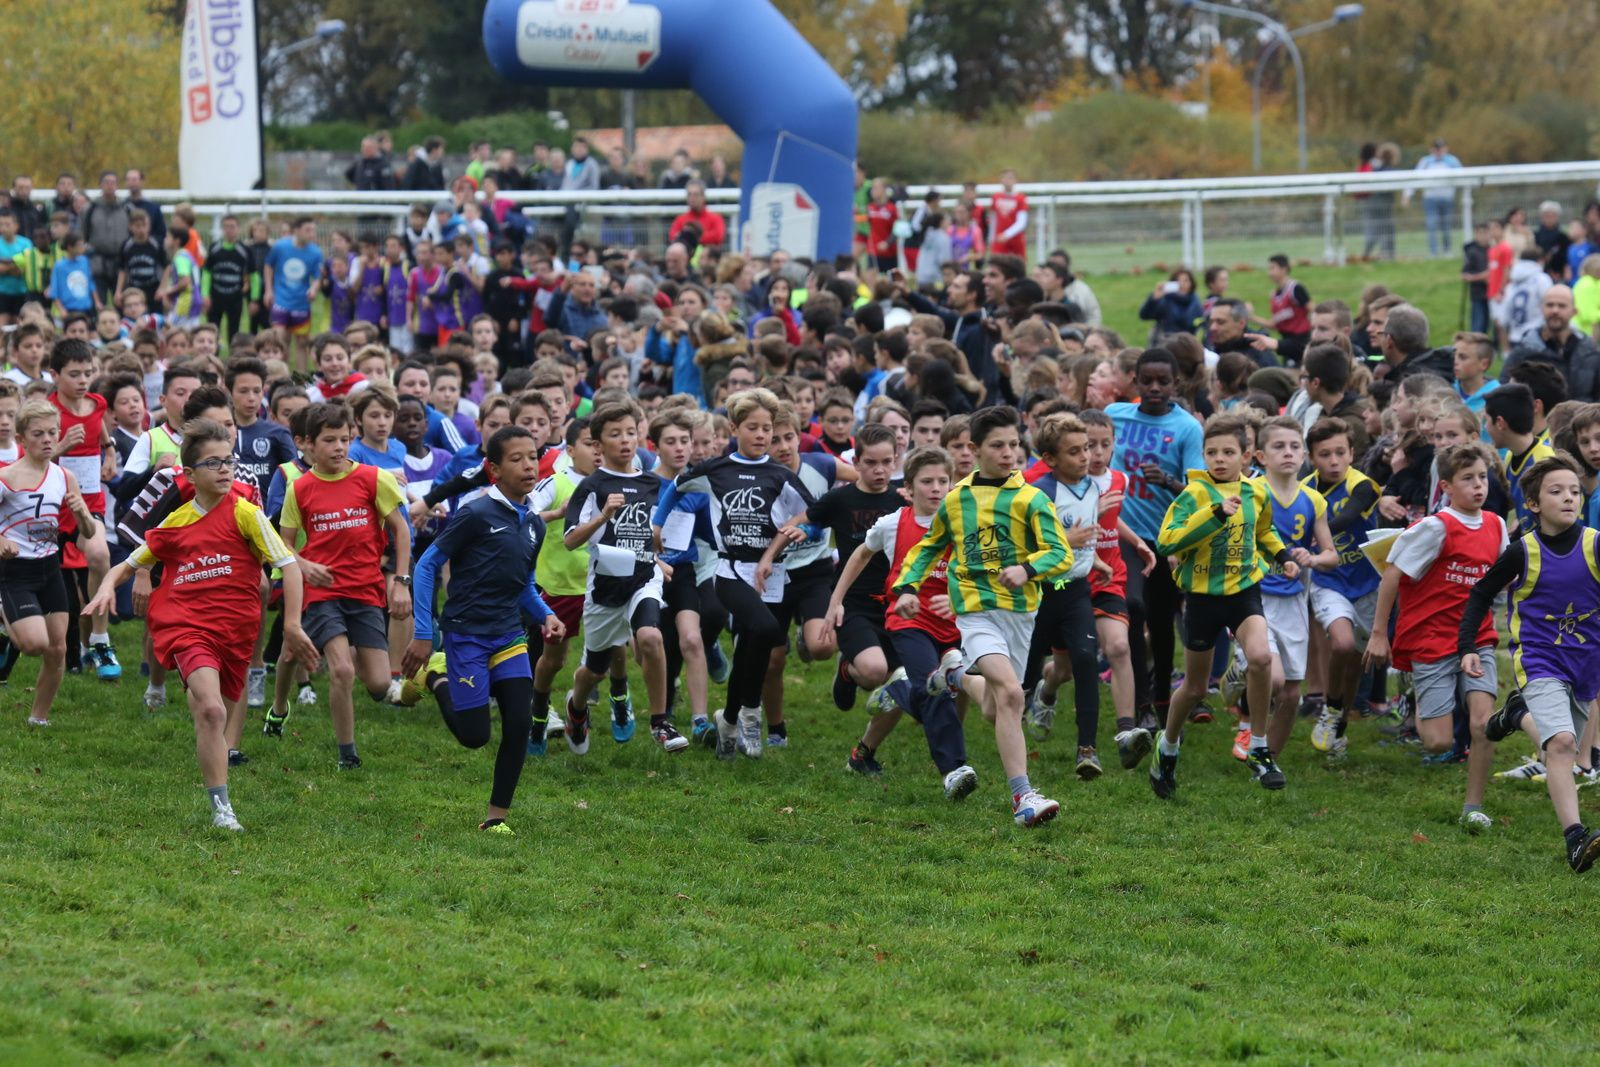 Les photos du cross départemental scolaire